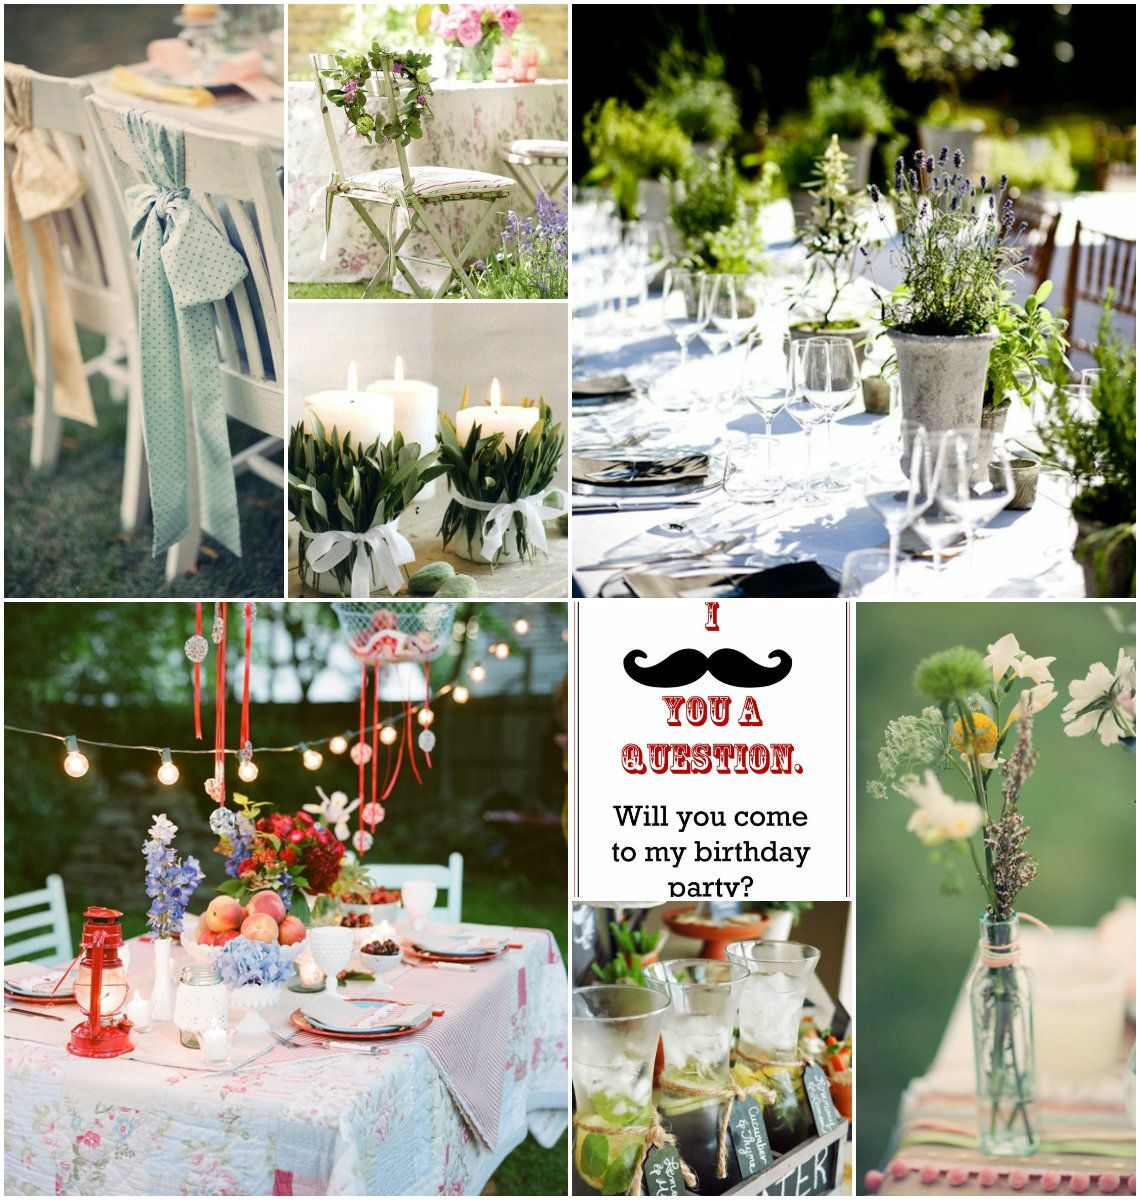 Village Garden Theme Fantastic 18th Birthday Party Ideas Party